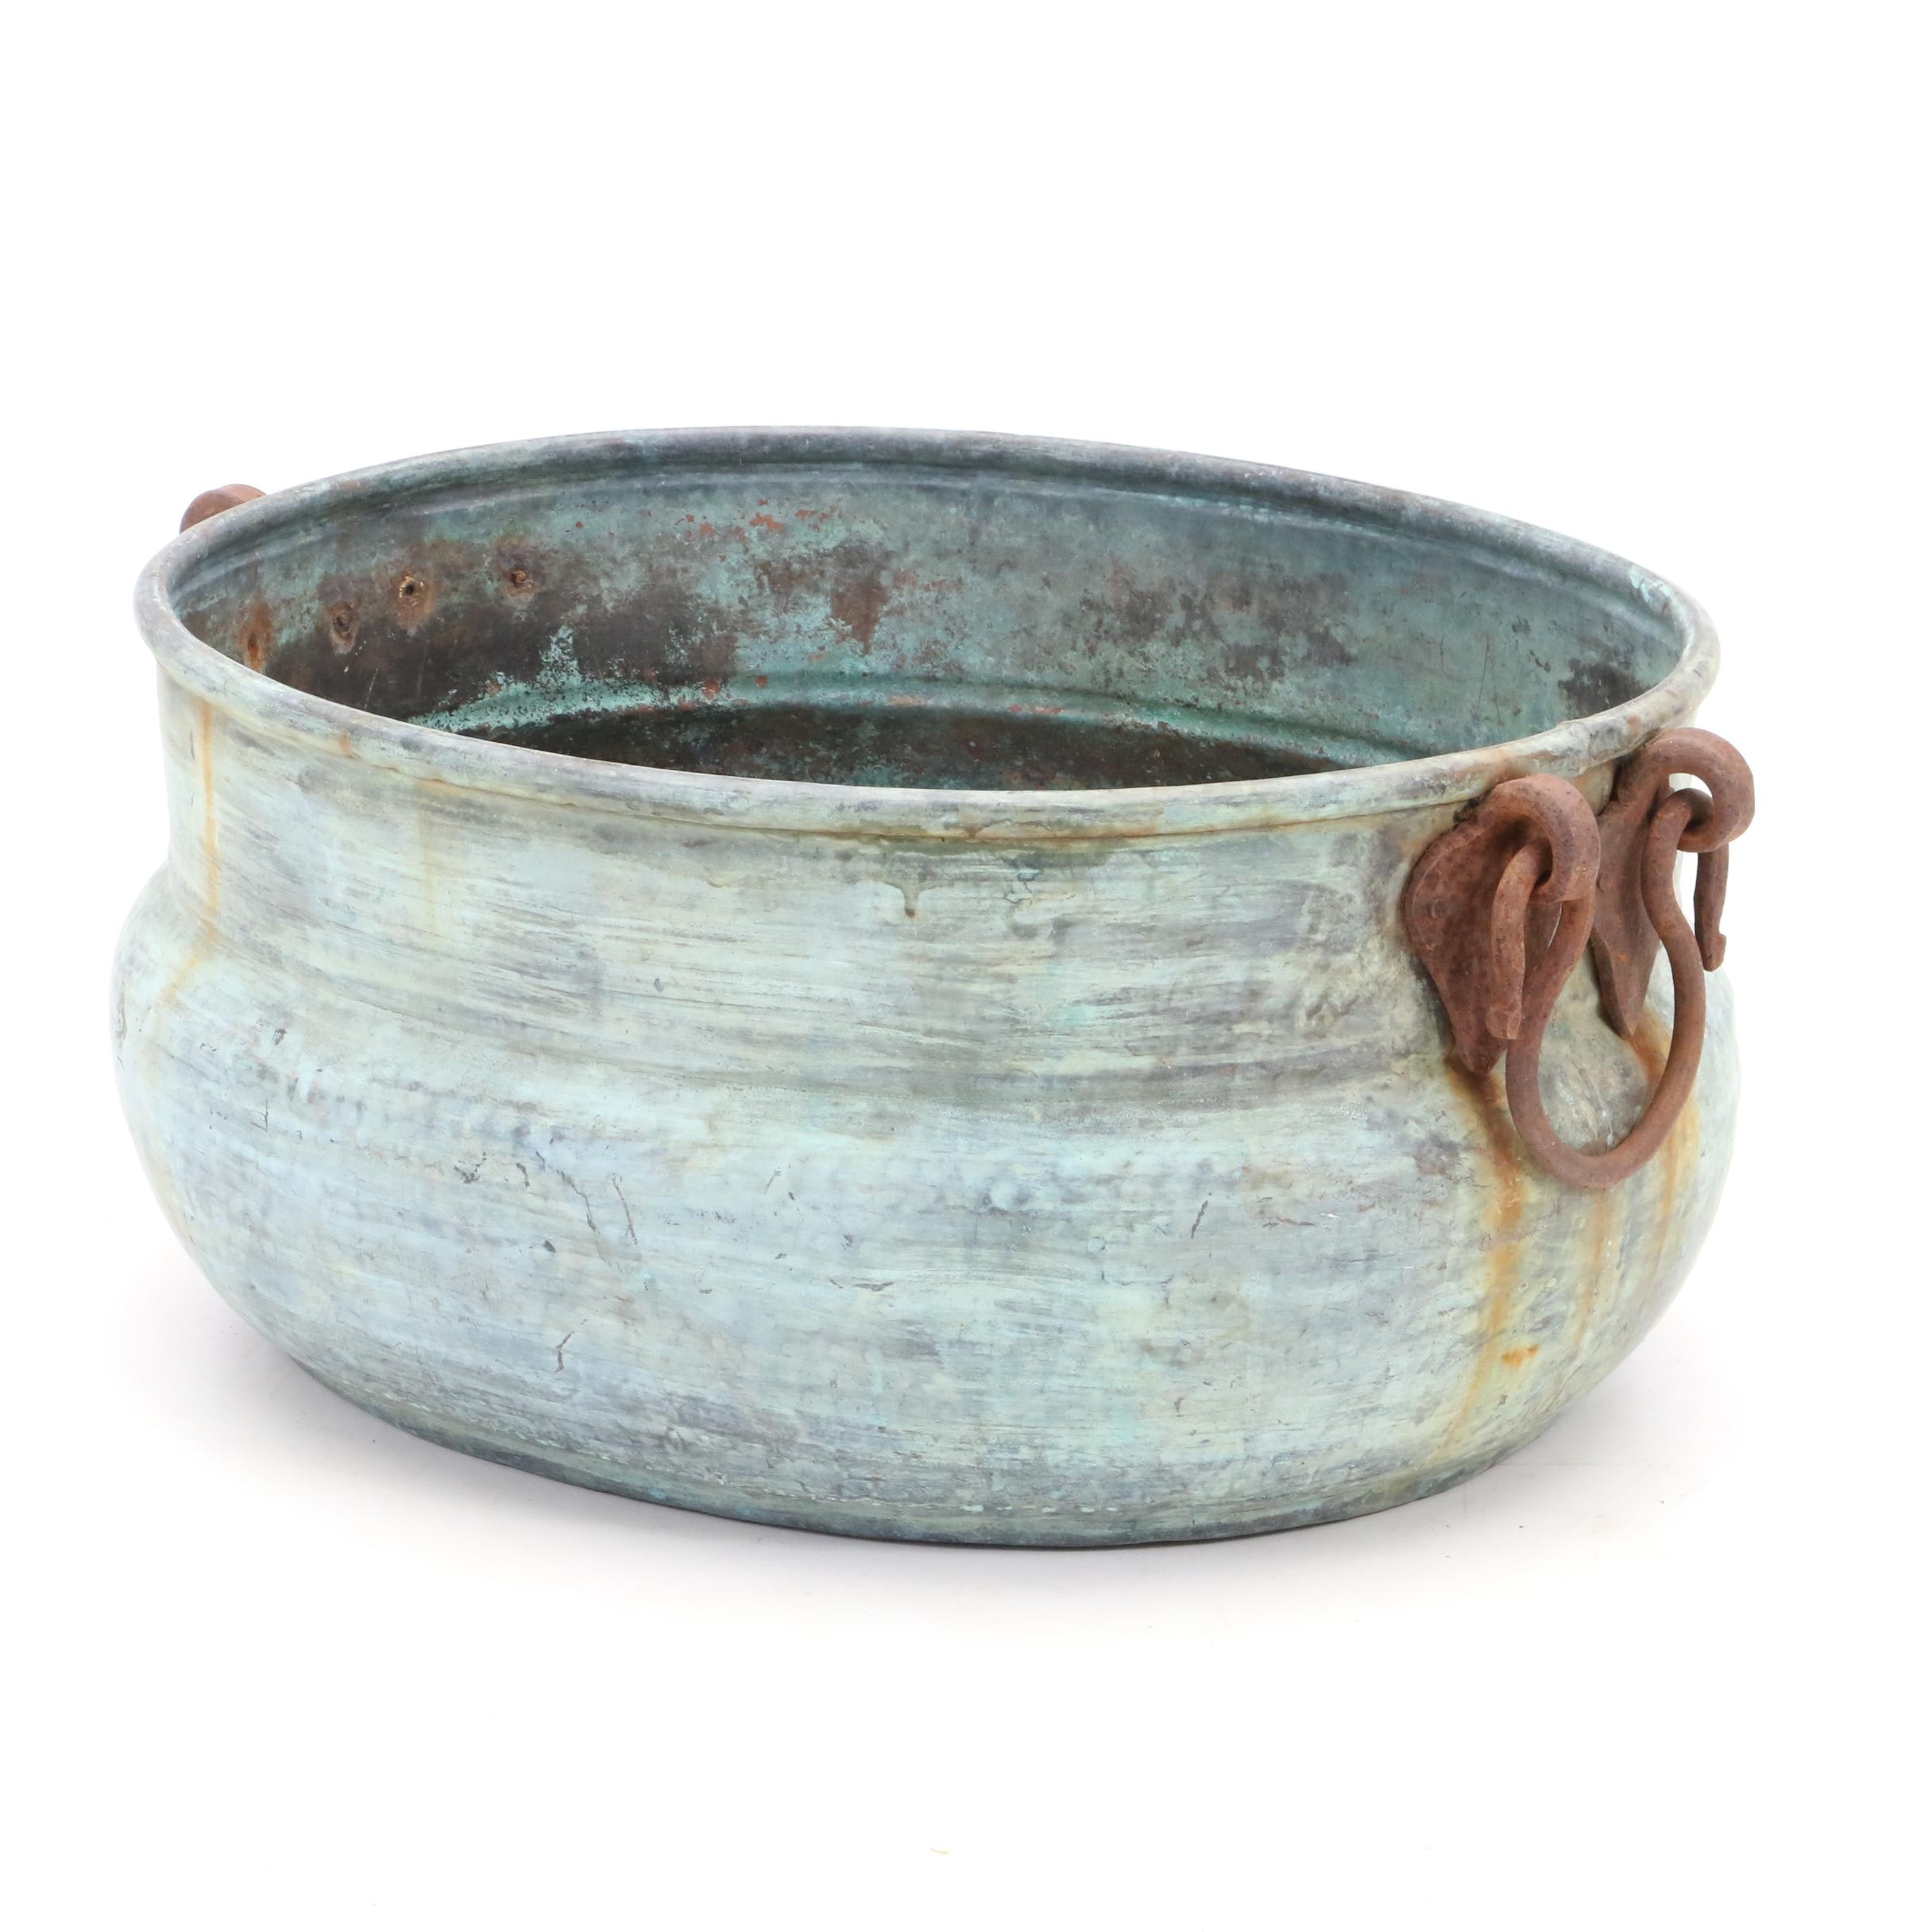 Vintage Copper Pot with Forged Double Iron Ring Handles